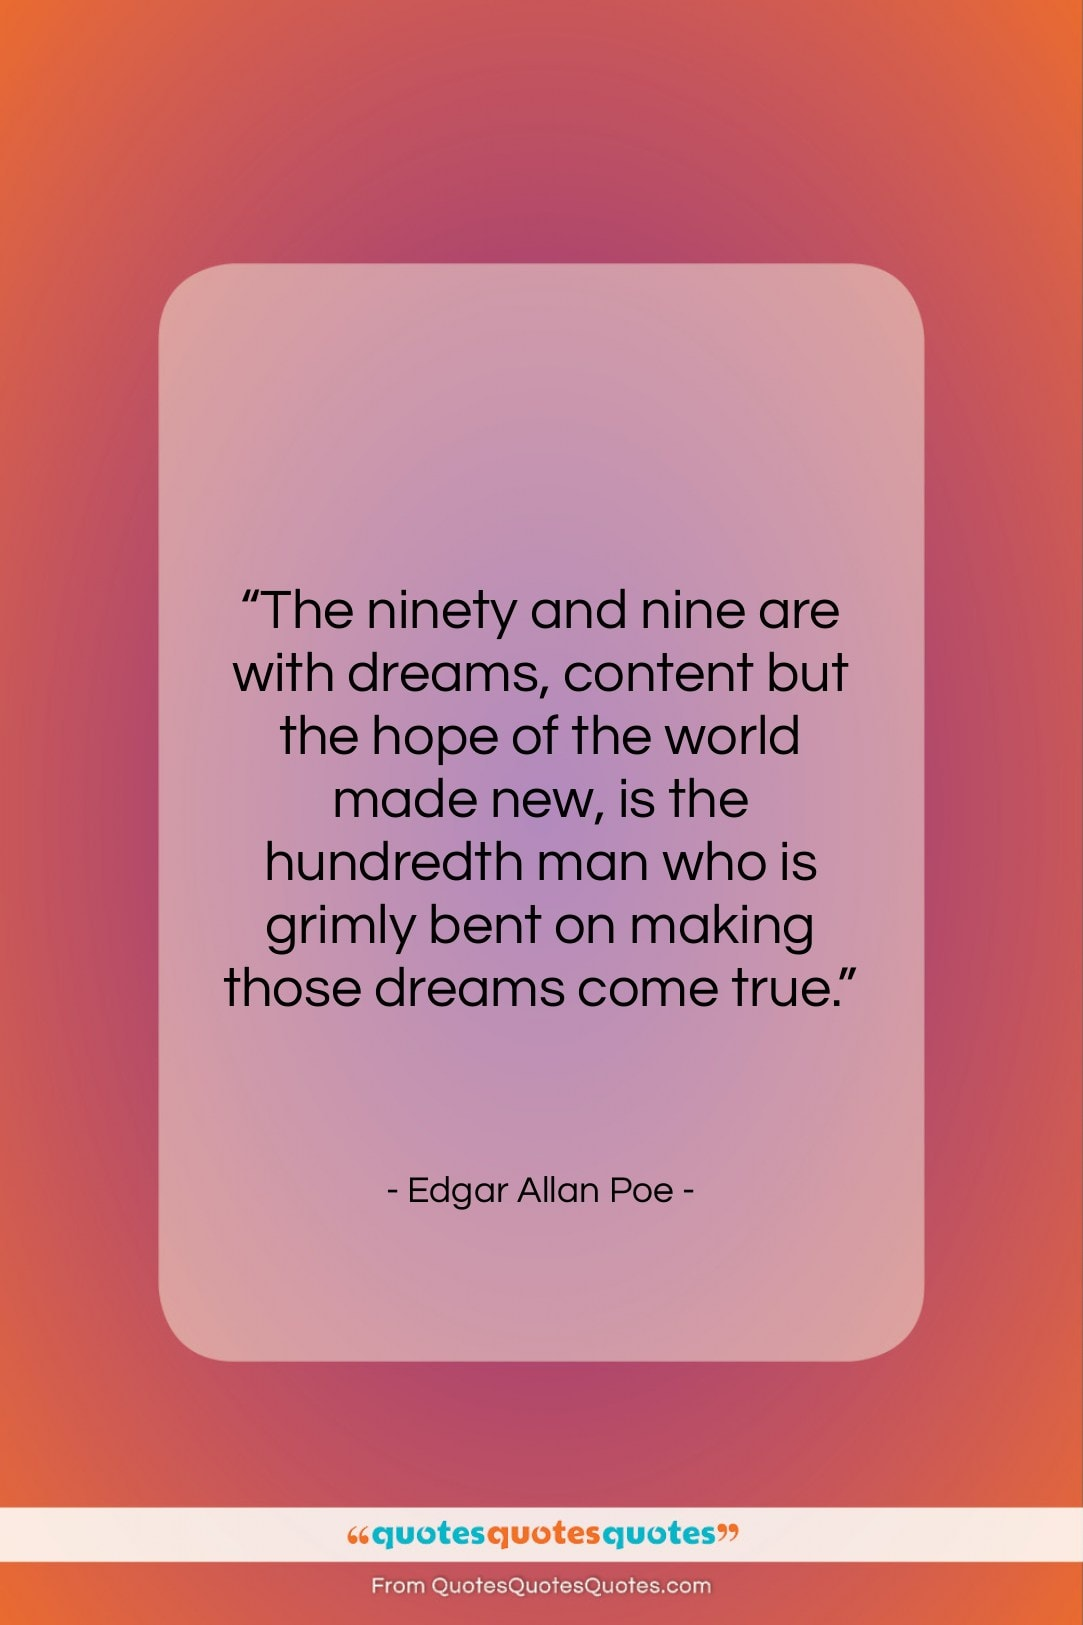 """Edgar Allan Poe quote: """"The ninety and nine are with dreams,…""""- at QuotesQuotesQuotes.com"""